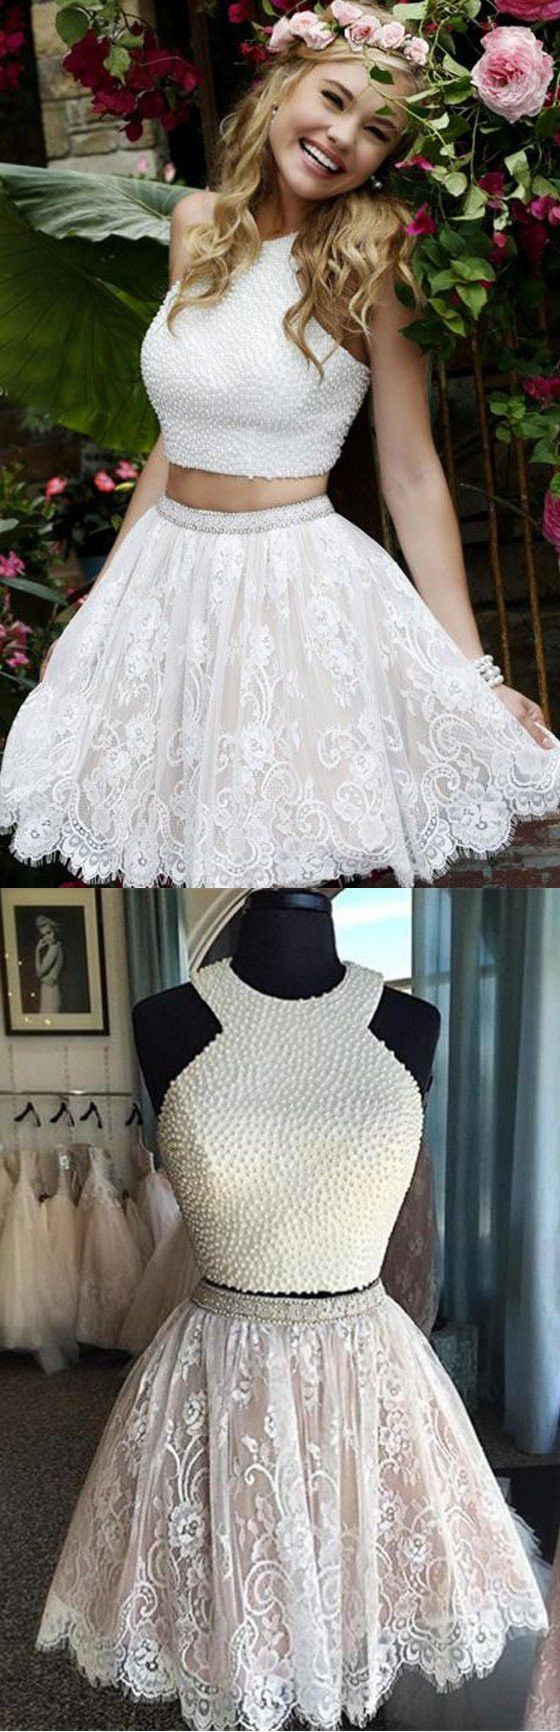 Two Piece Homecoming Dress,Short Formal Dress,Graduation Dress,Short Prom Dresses,SSD008 Only accept payment from PayPal,…